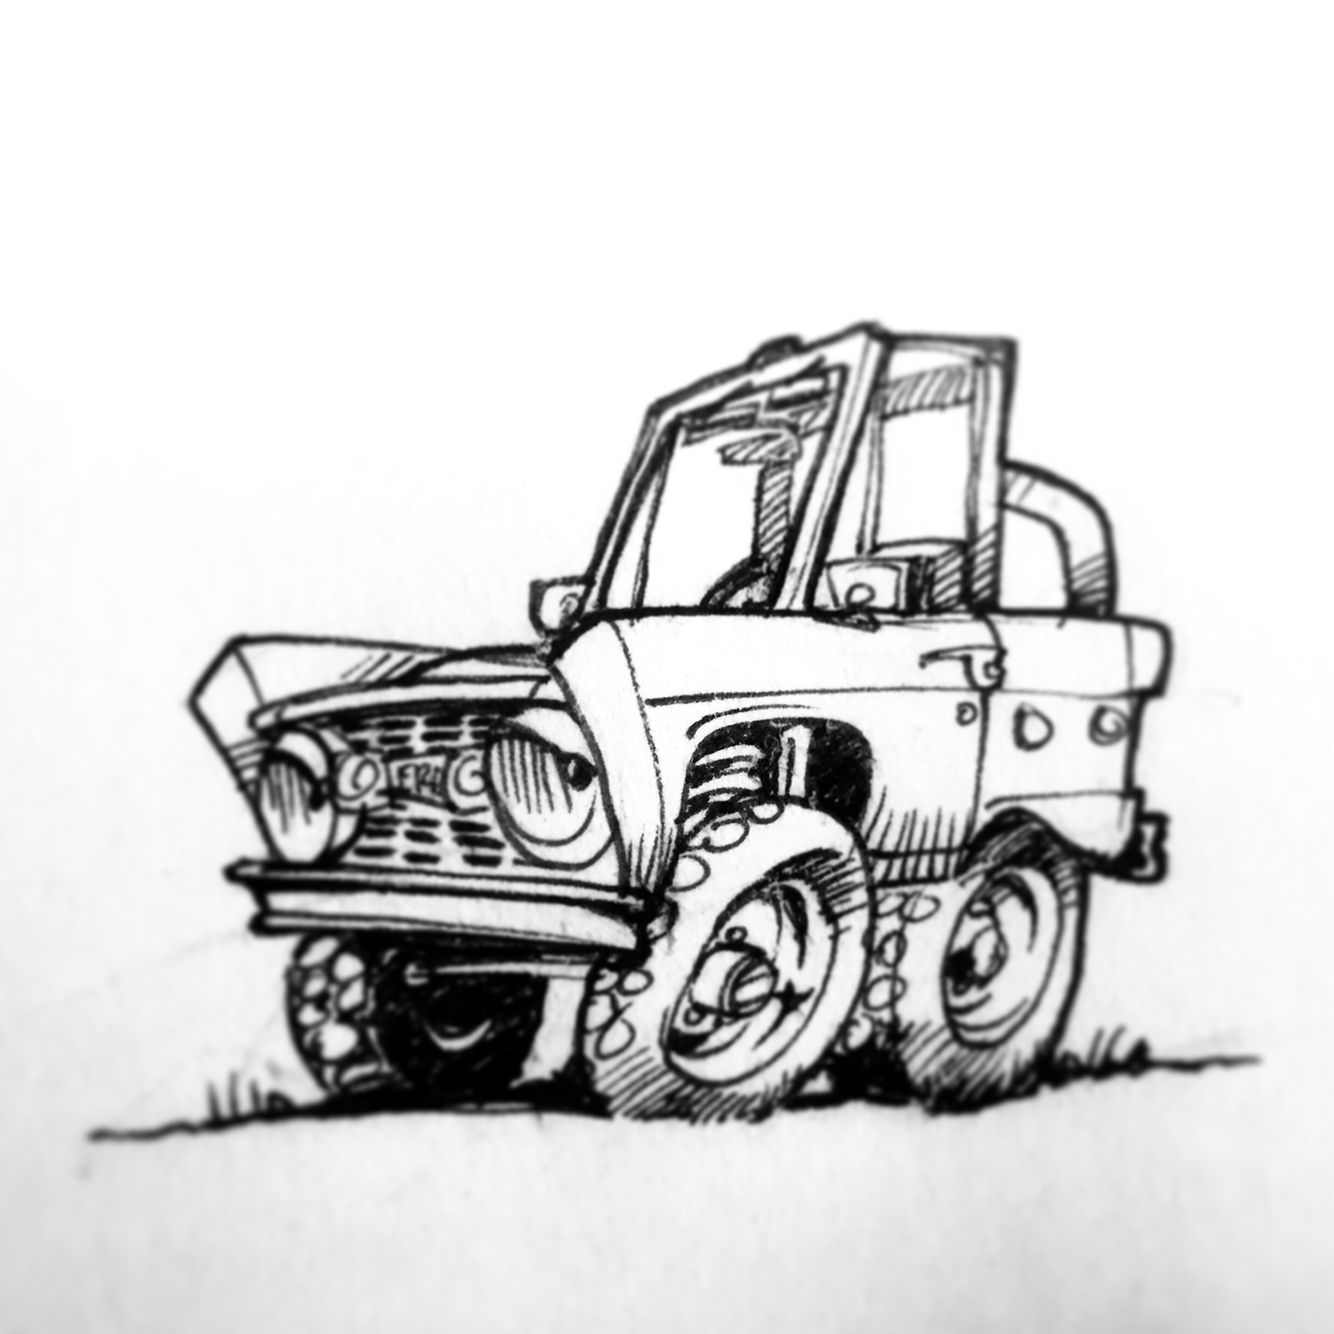 A Little Bronco Cartoon I Penned Classic Bronco Classic Ford